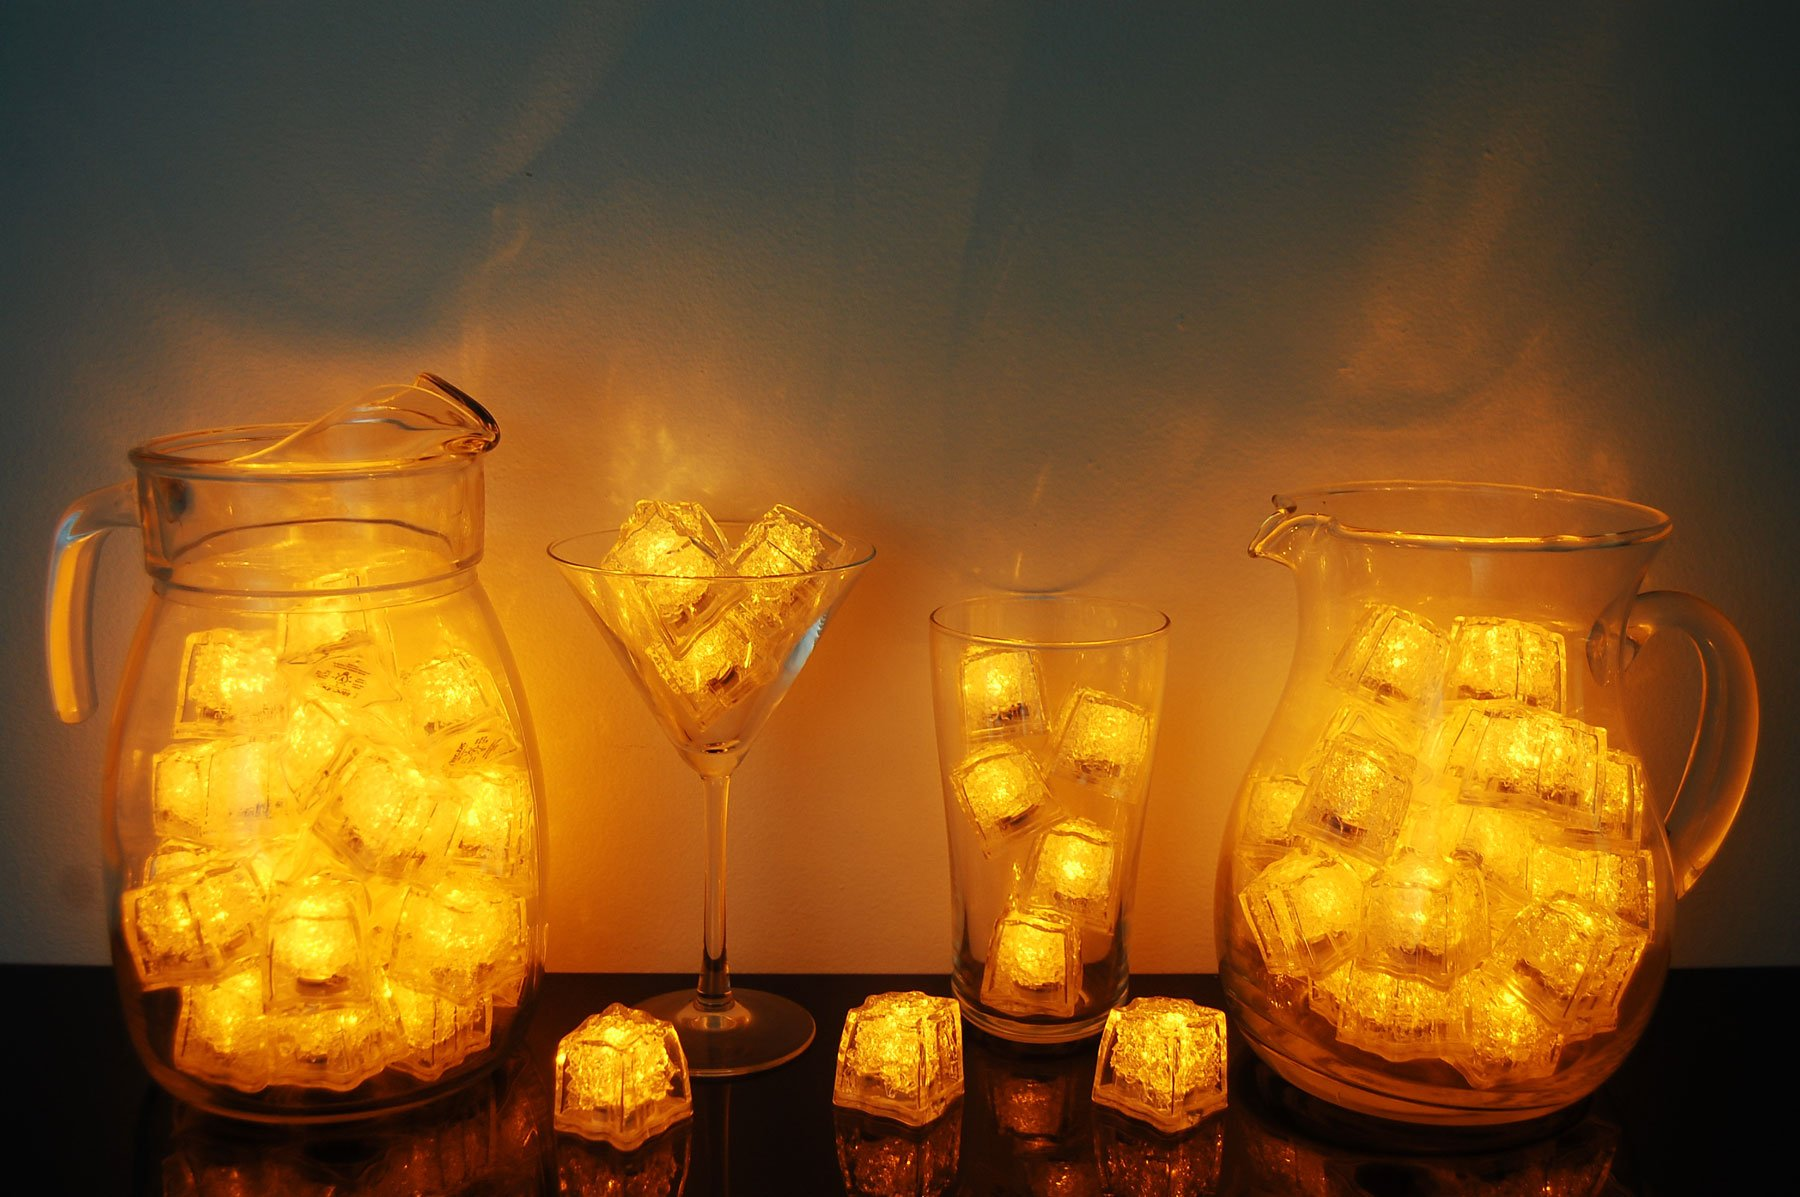 Set of 72 Litecubes Brand 3 Mode Yellow Light up LED Ice Cubes by LiteCubes